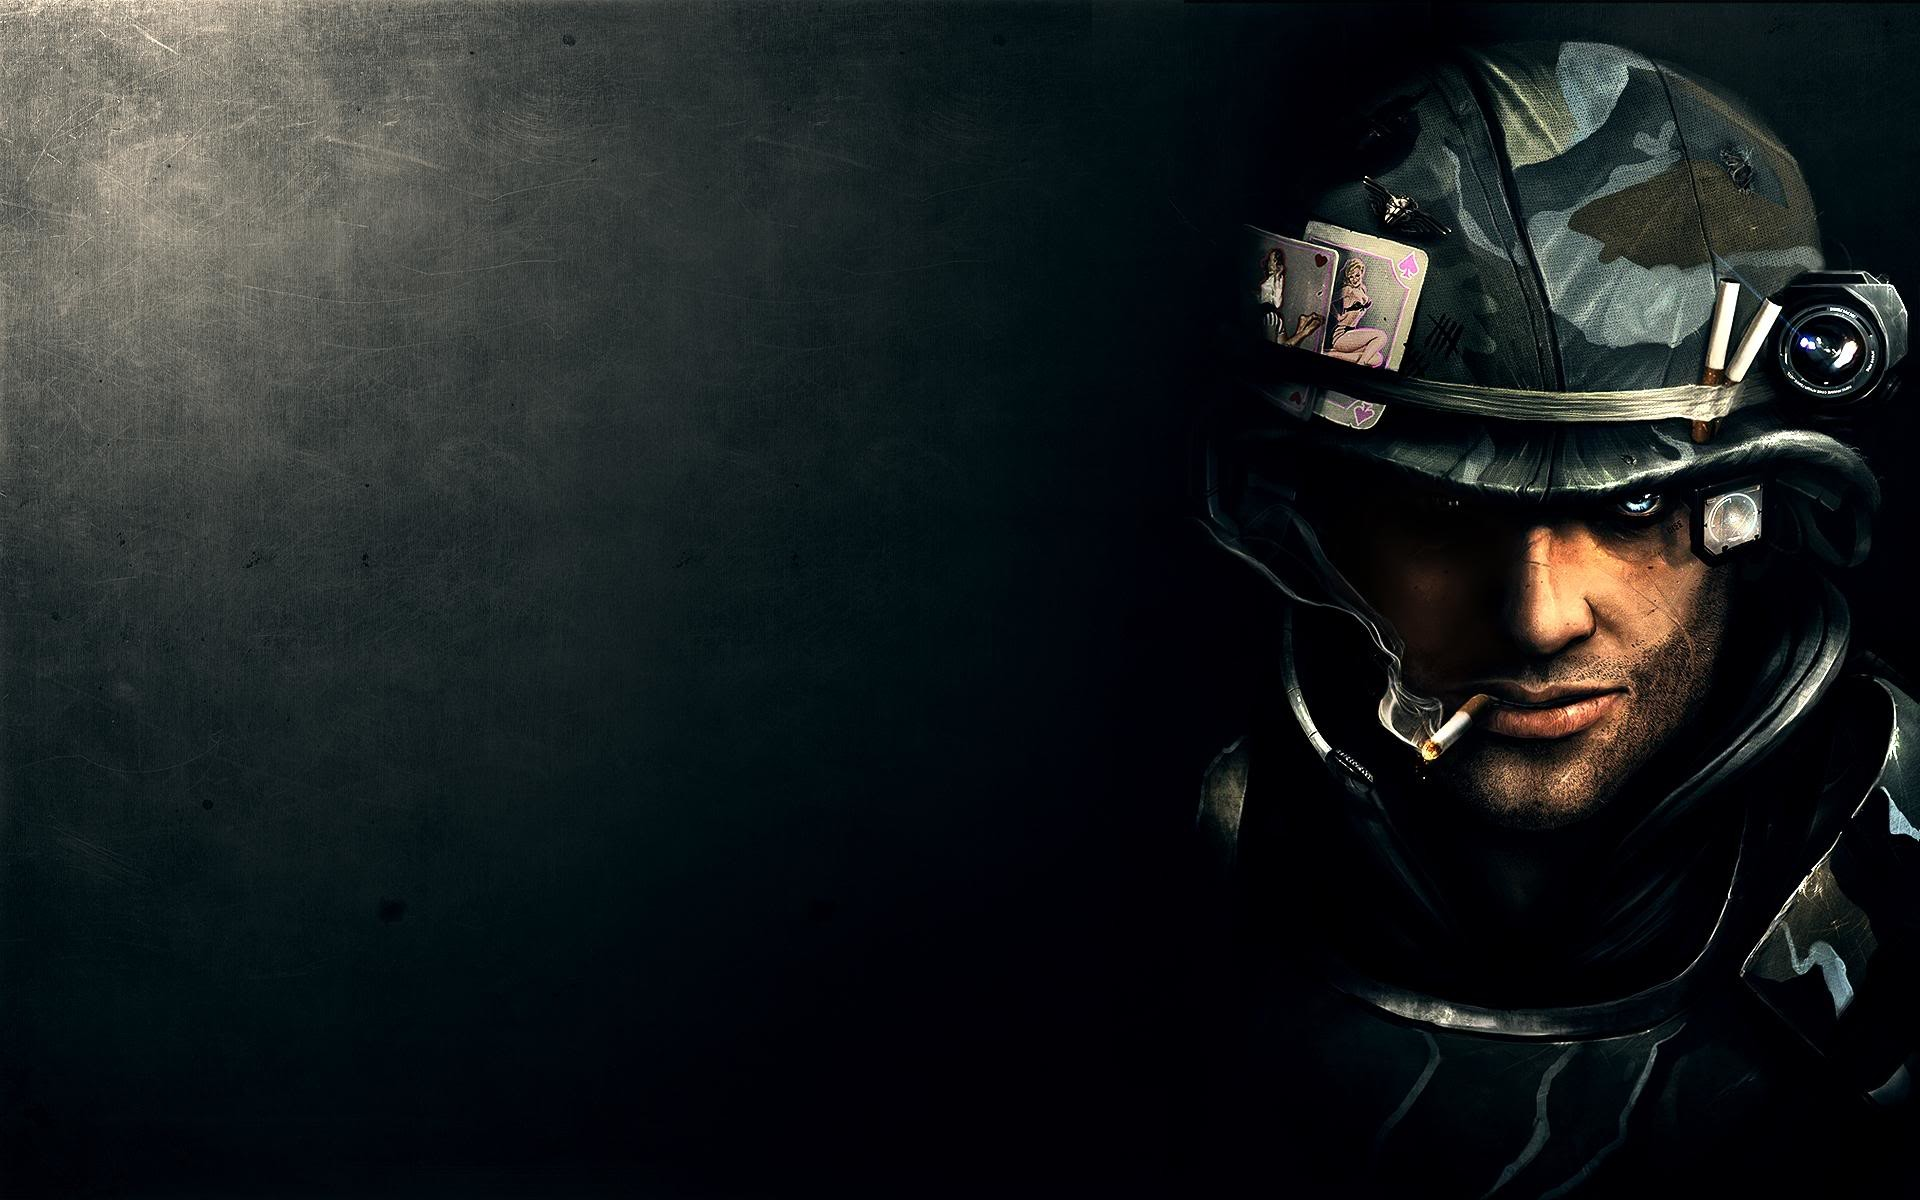 Wallpapers For > Cool Marine Wallpaper